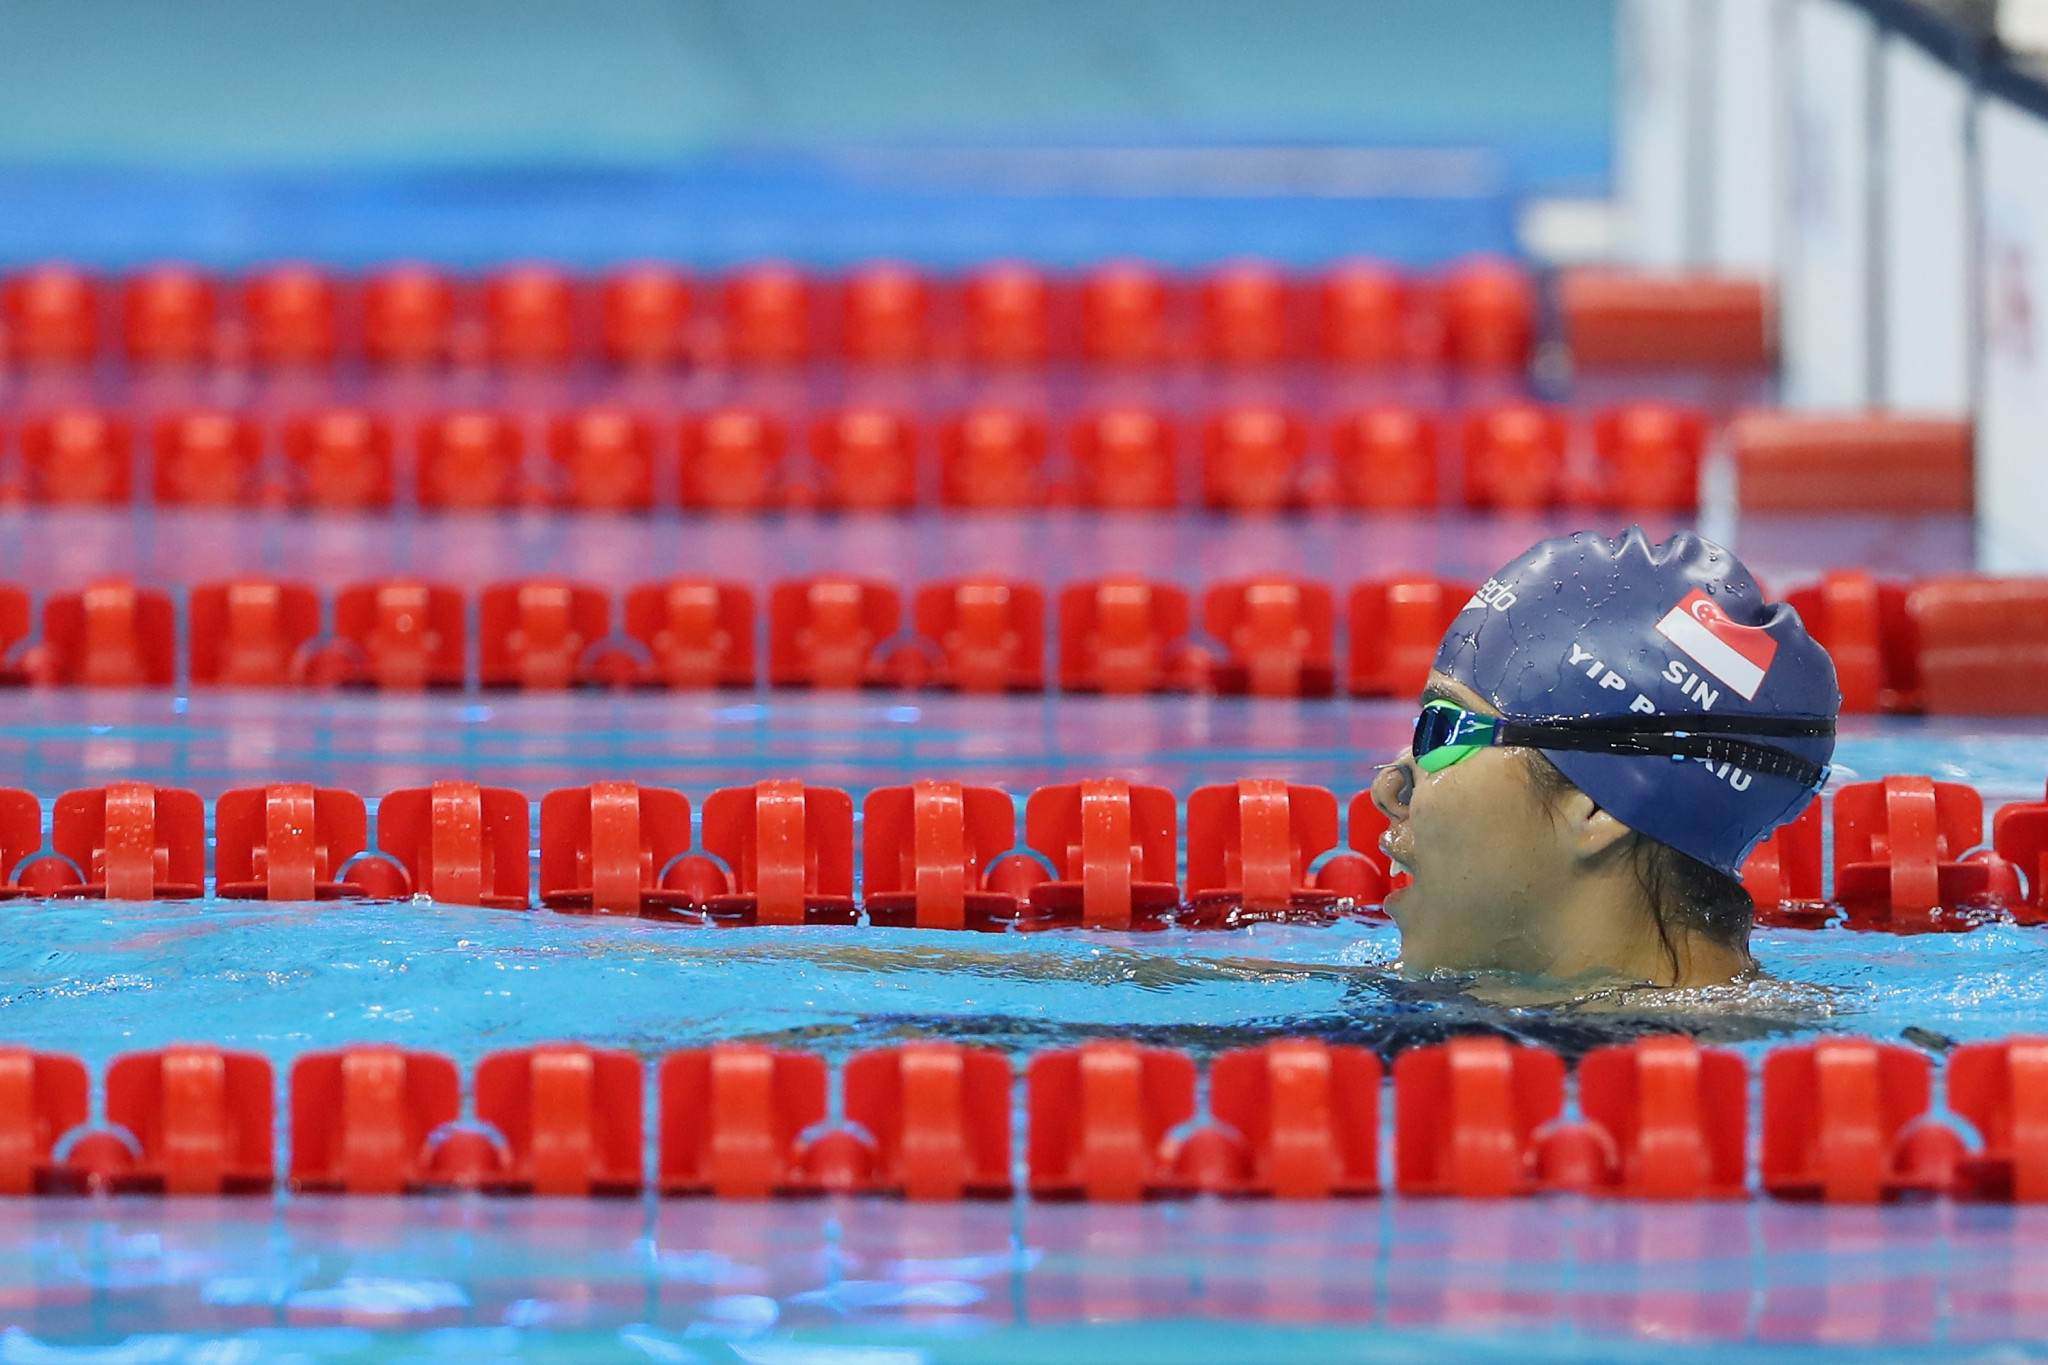 Singapore's 2016 Paralympic champion Yip Pin Xiu will seek to earn further gold at the Para Swimming World Series event that starts tomorrow in her home country ©Getty Images